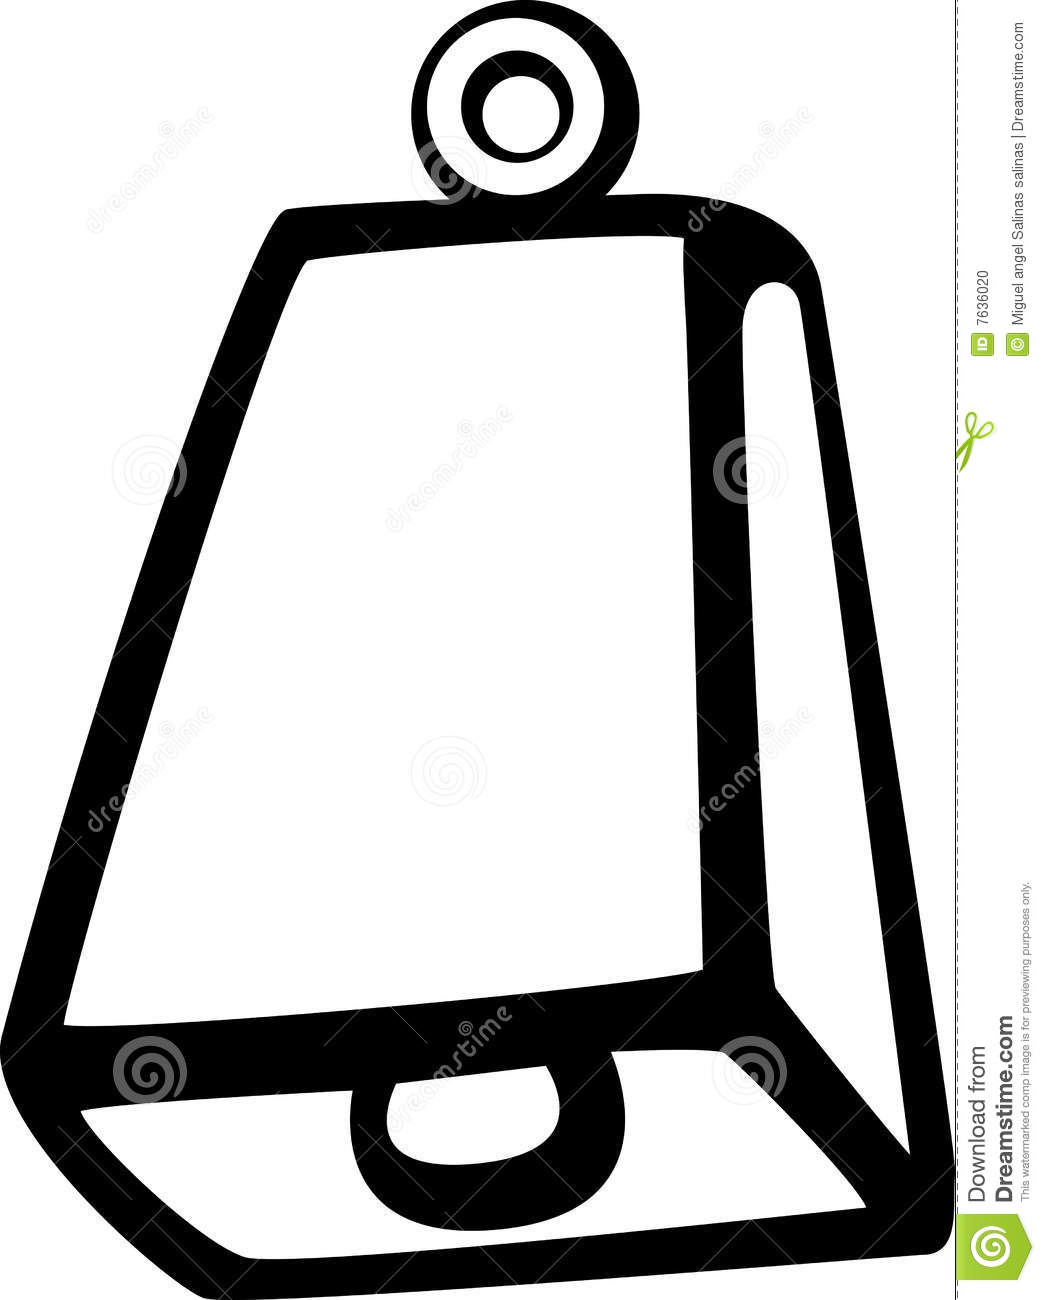 cowbell vector illustration stock vector illustration of cowbell rh dreamstime com cowbell clipart cowbell clipart free